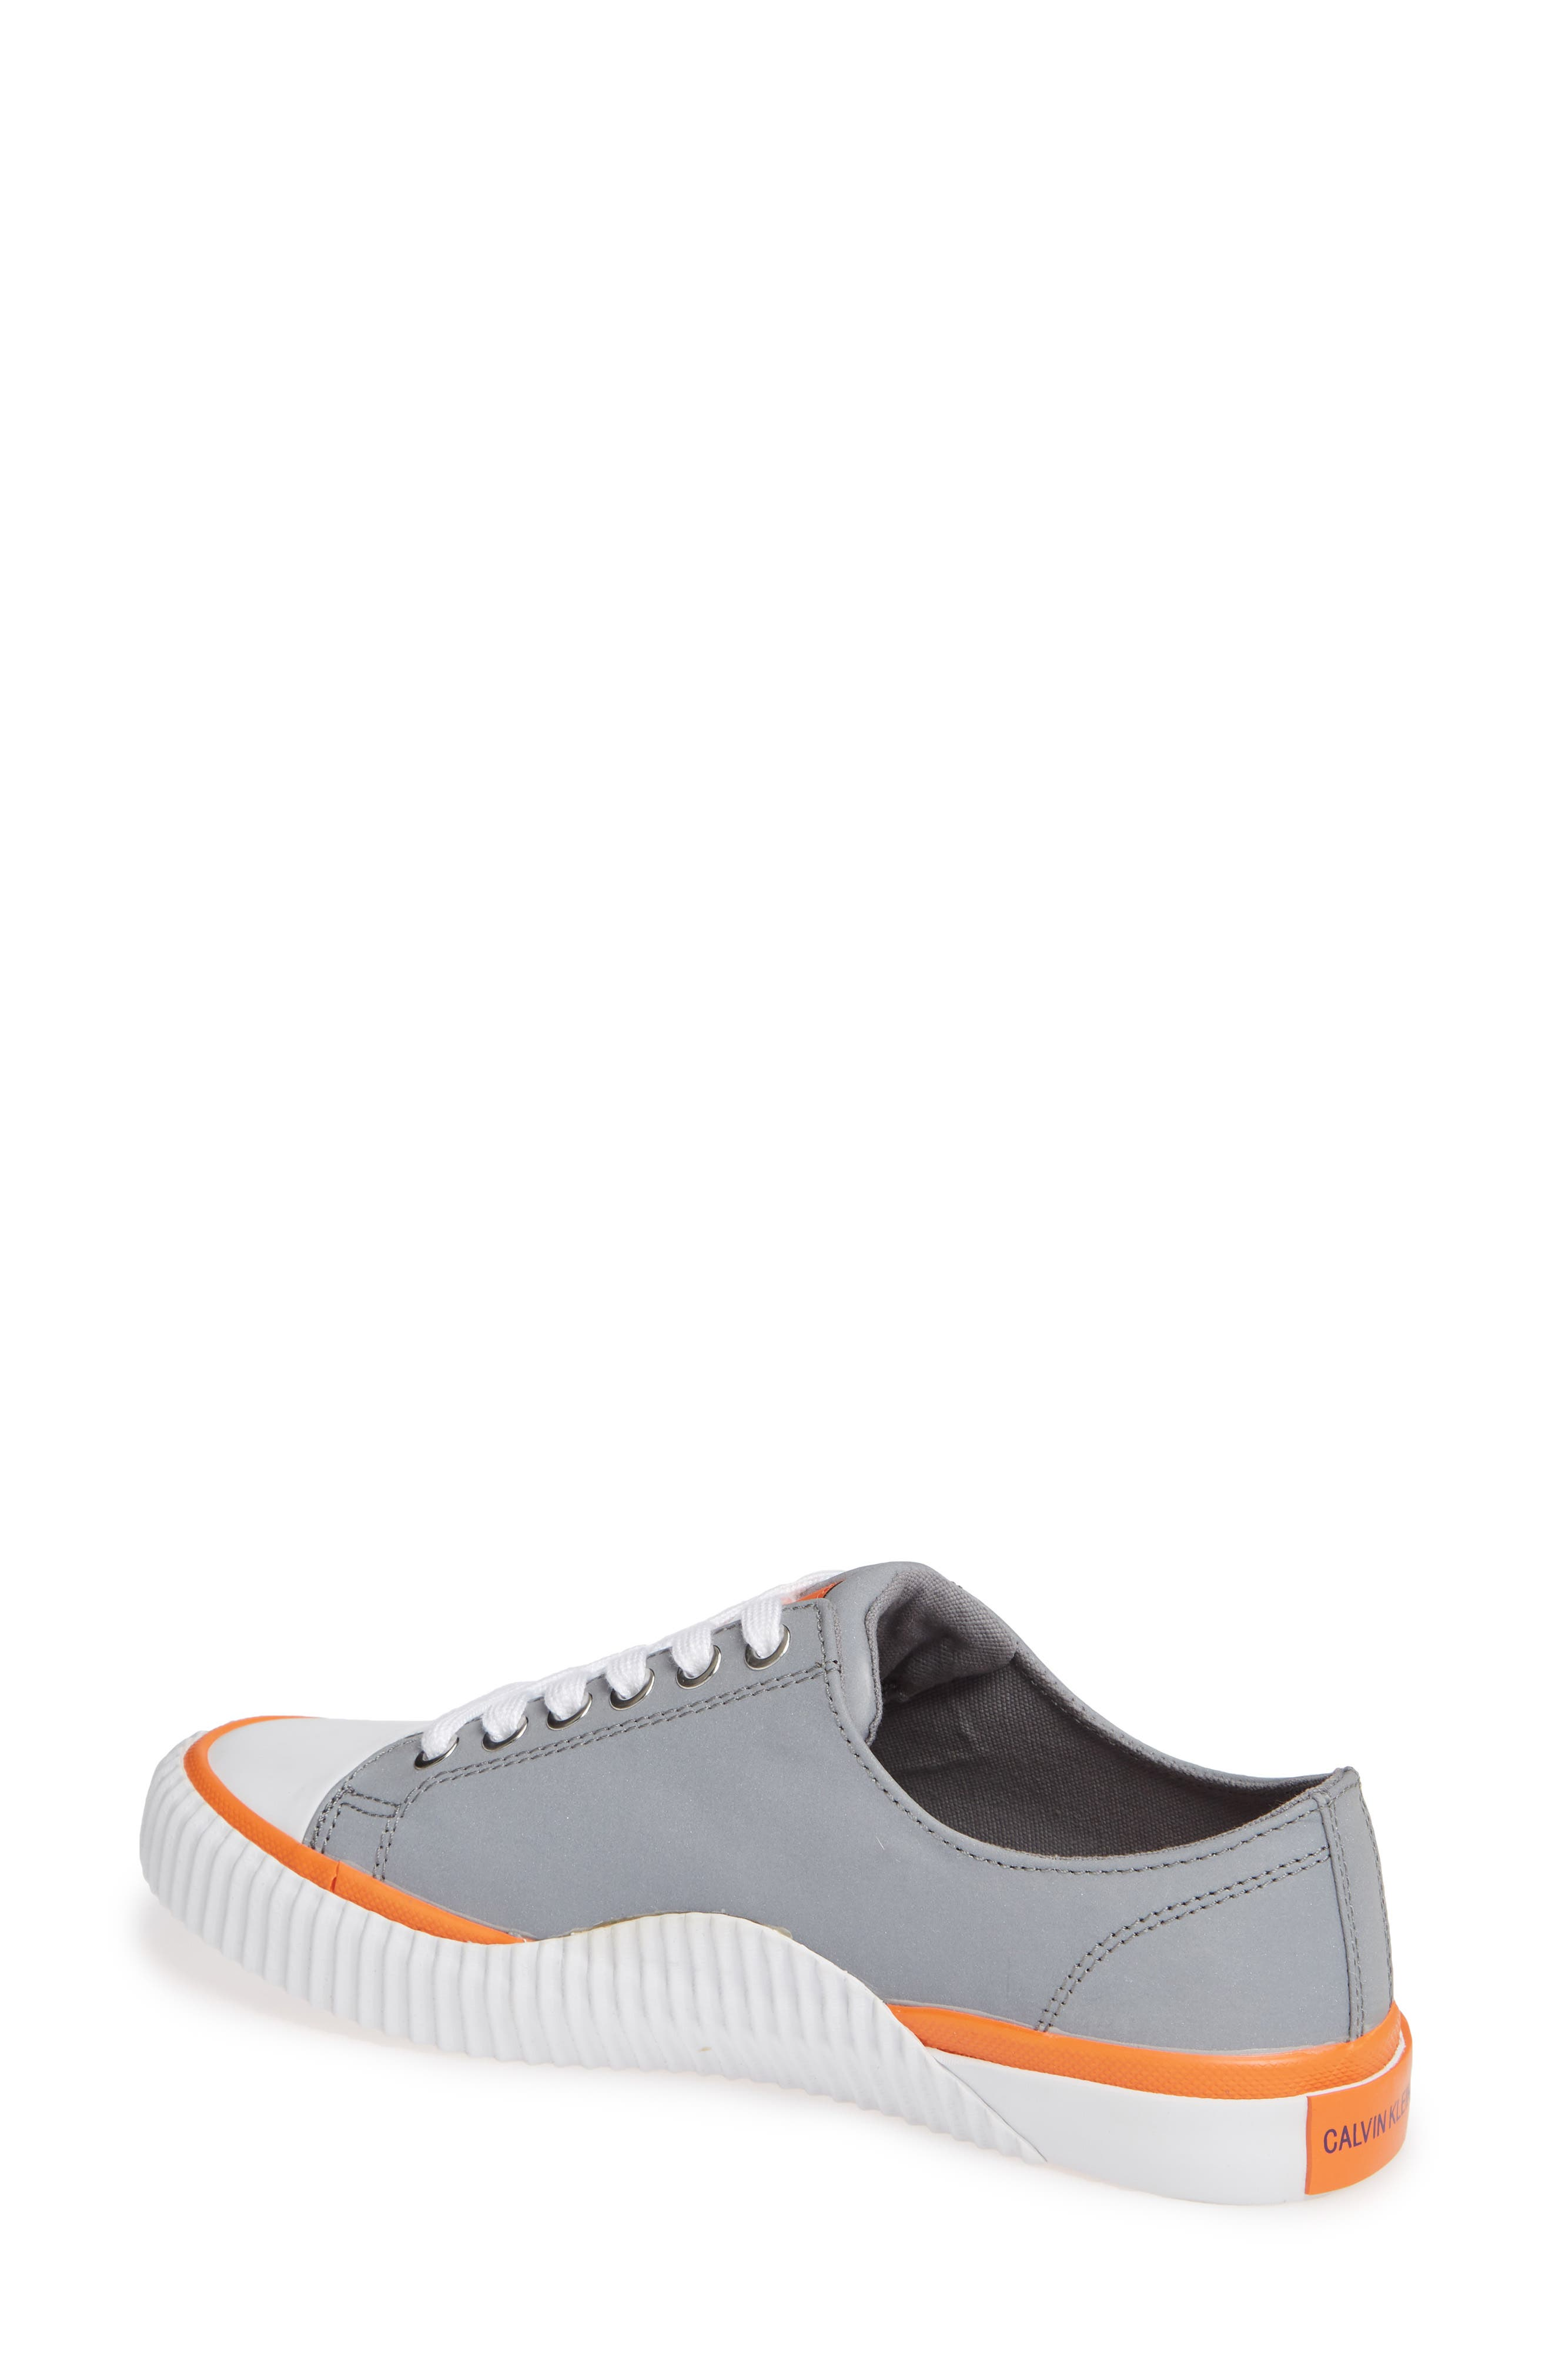 Ivory Lace-Up Sneaker,                             Alternate thumbnail 2, color,                             SILVER